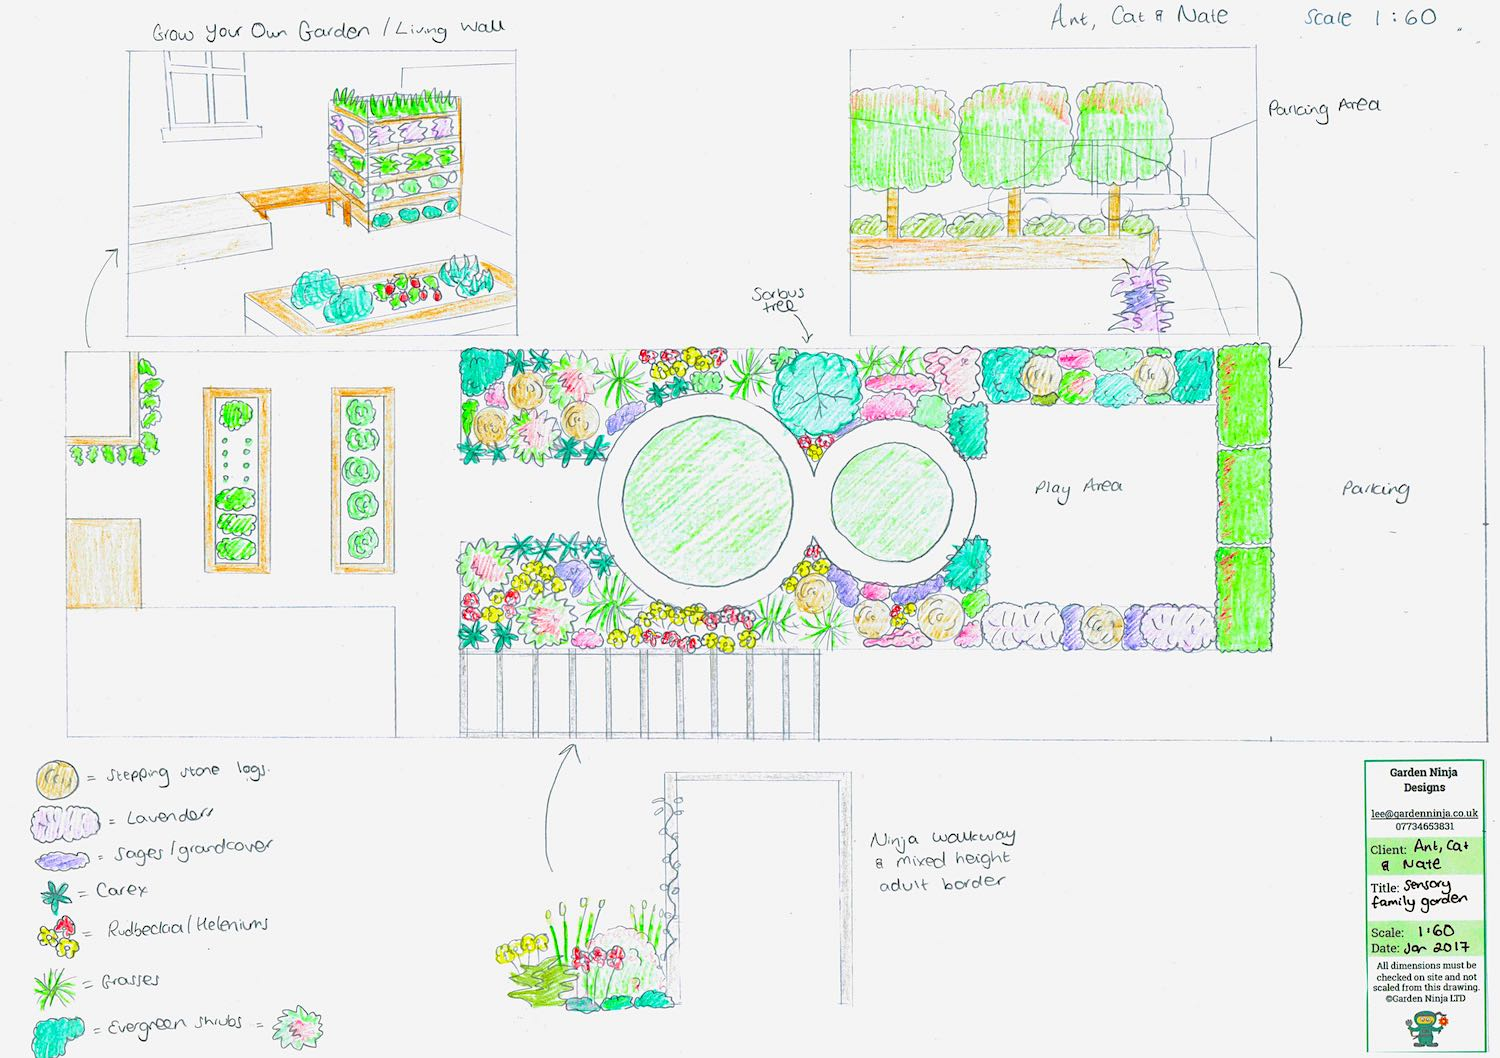 A child friendly garden design